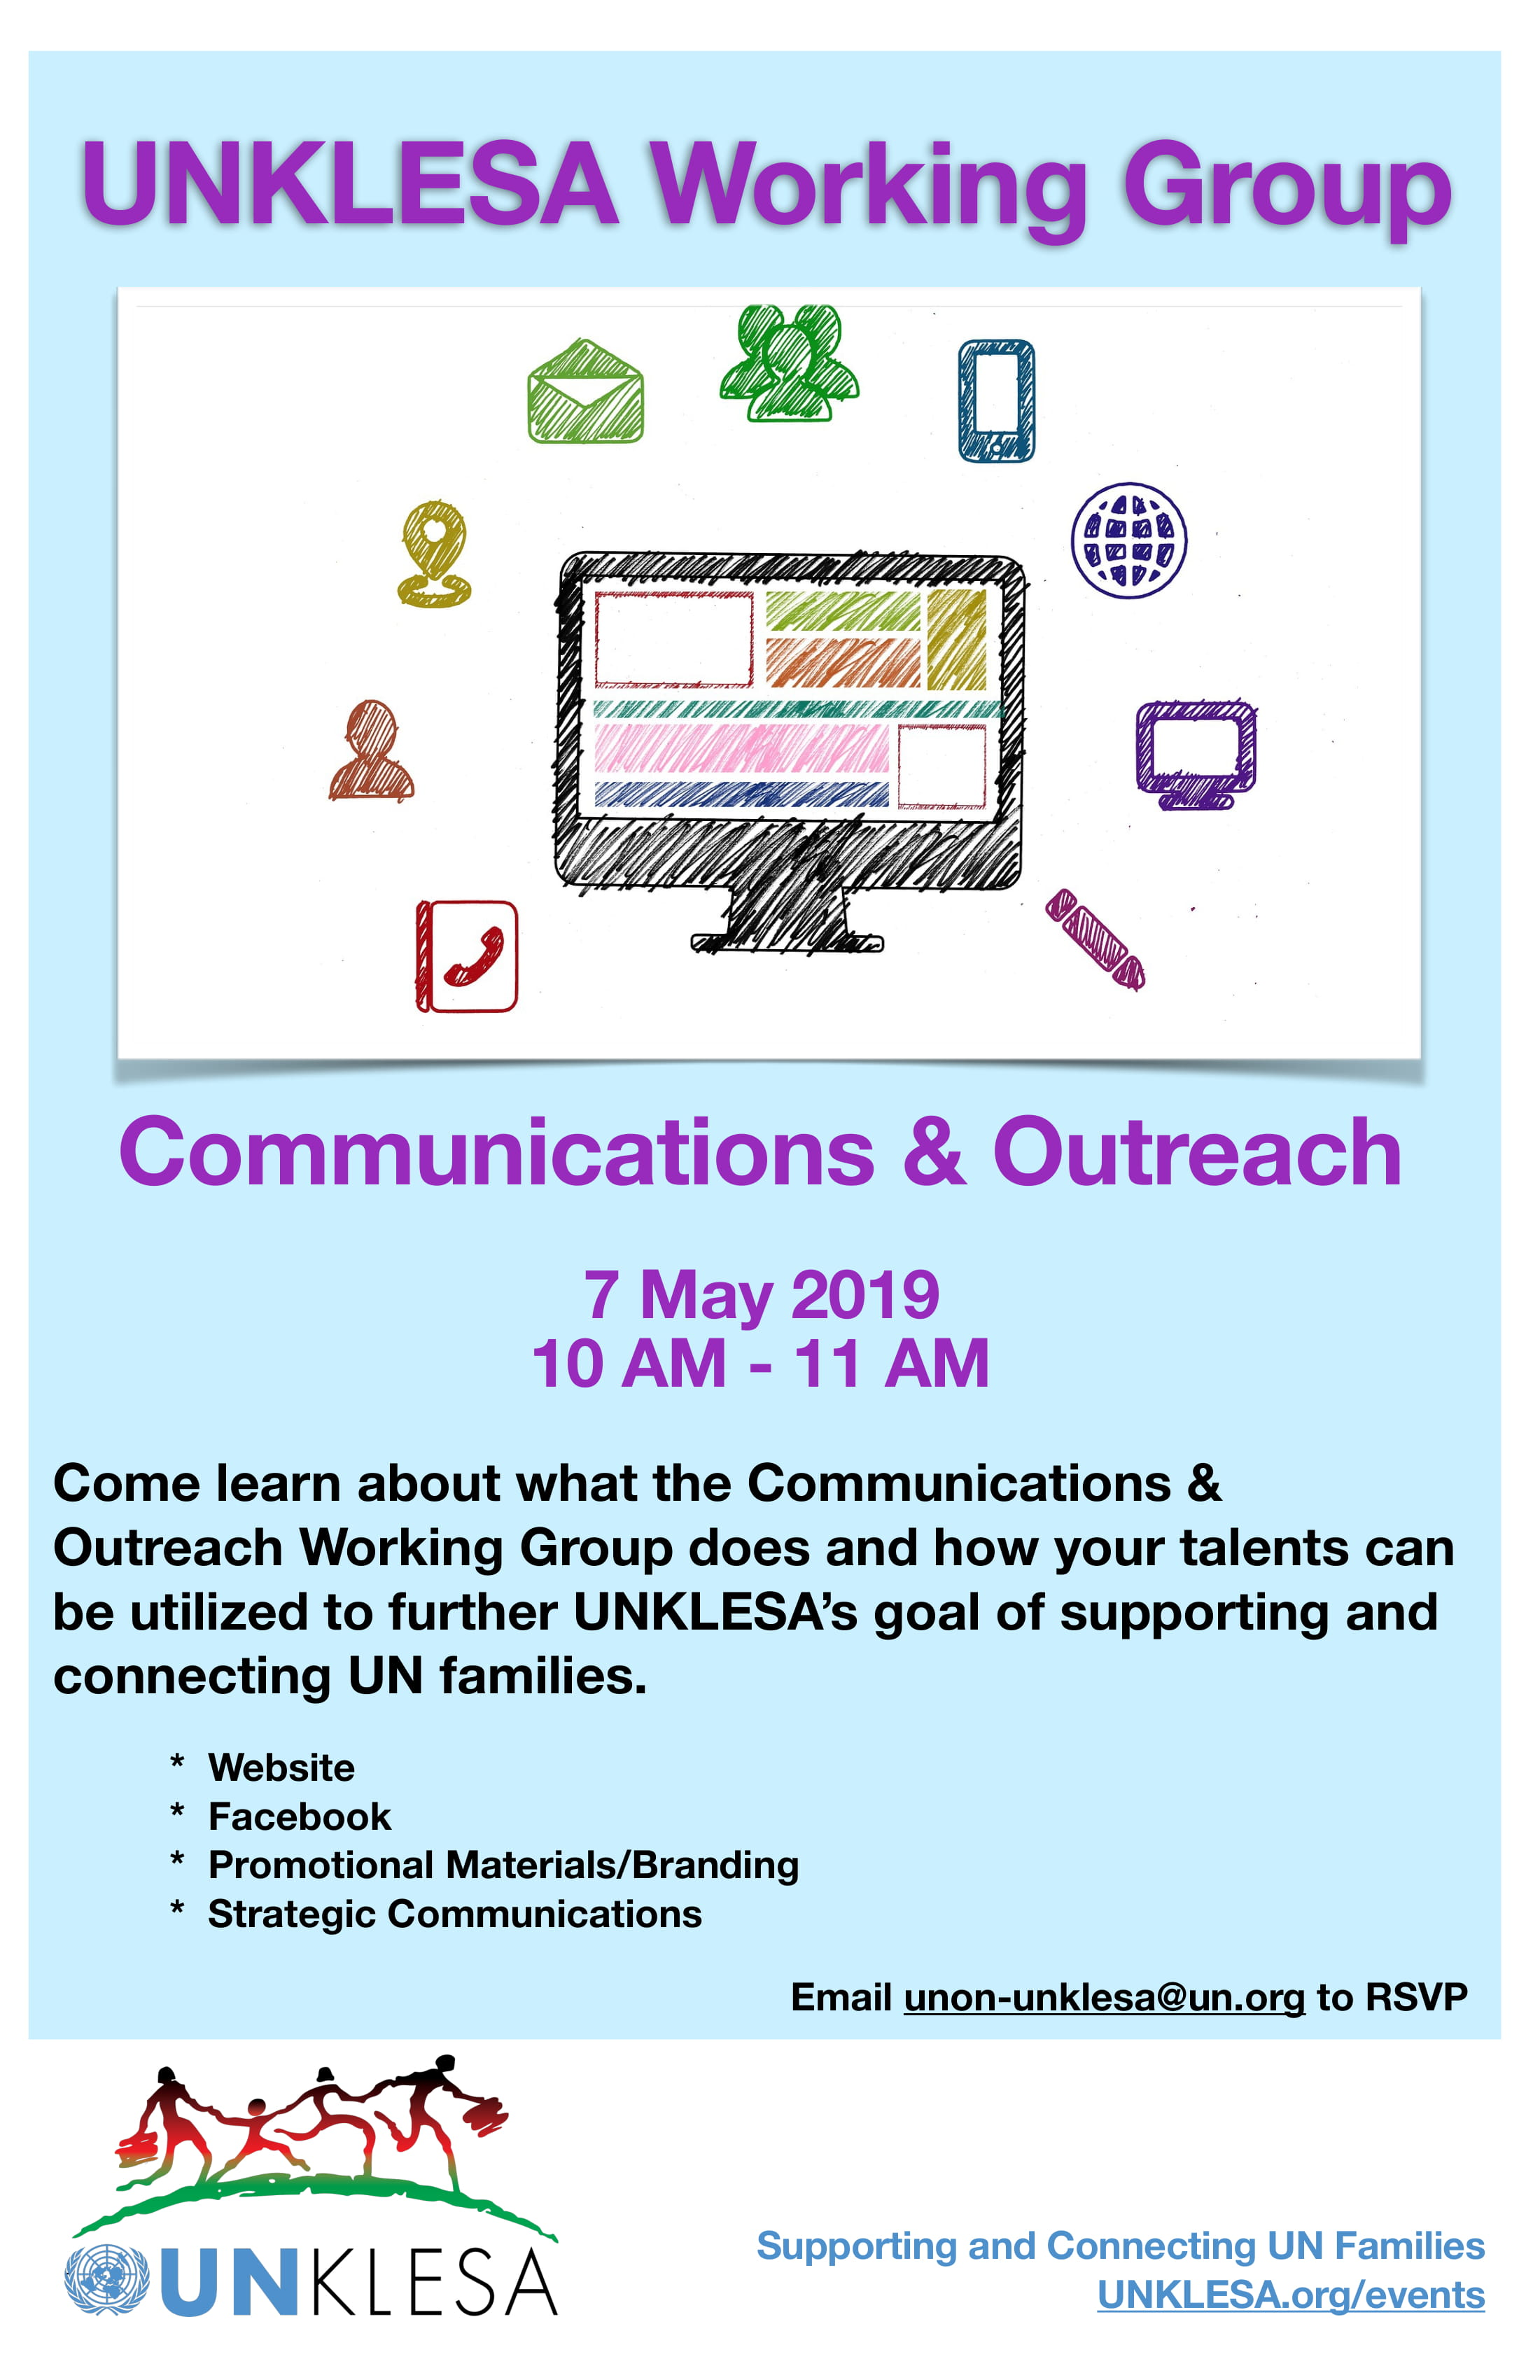 UNKLESA_WorkingGroup_Communications&Outreach-1.jpg